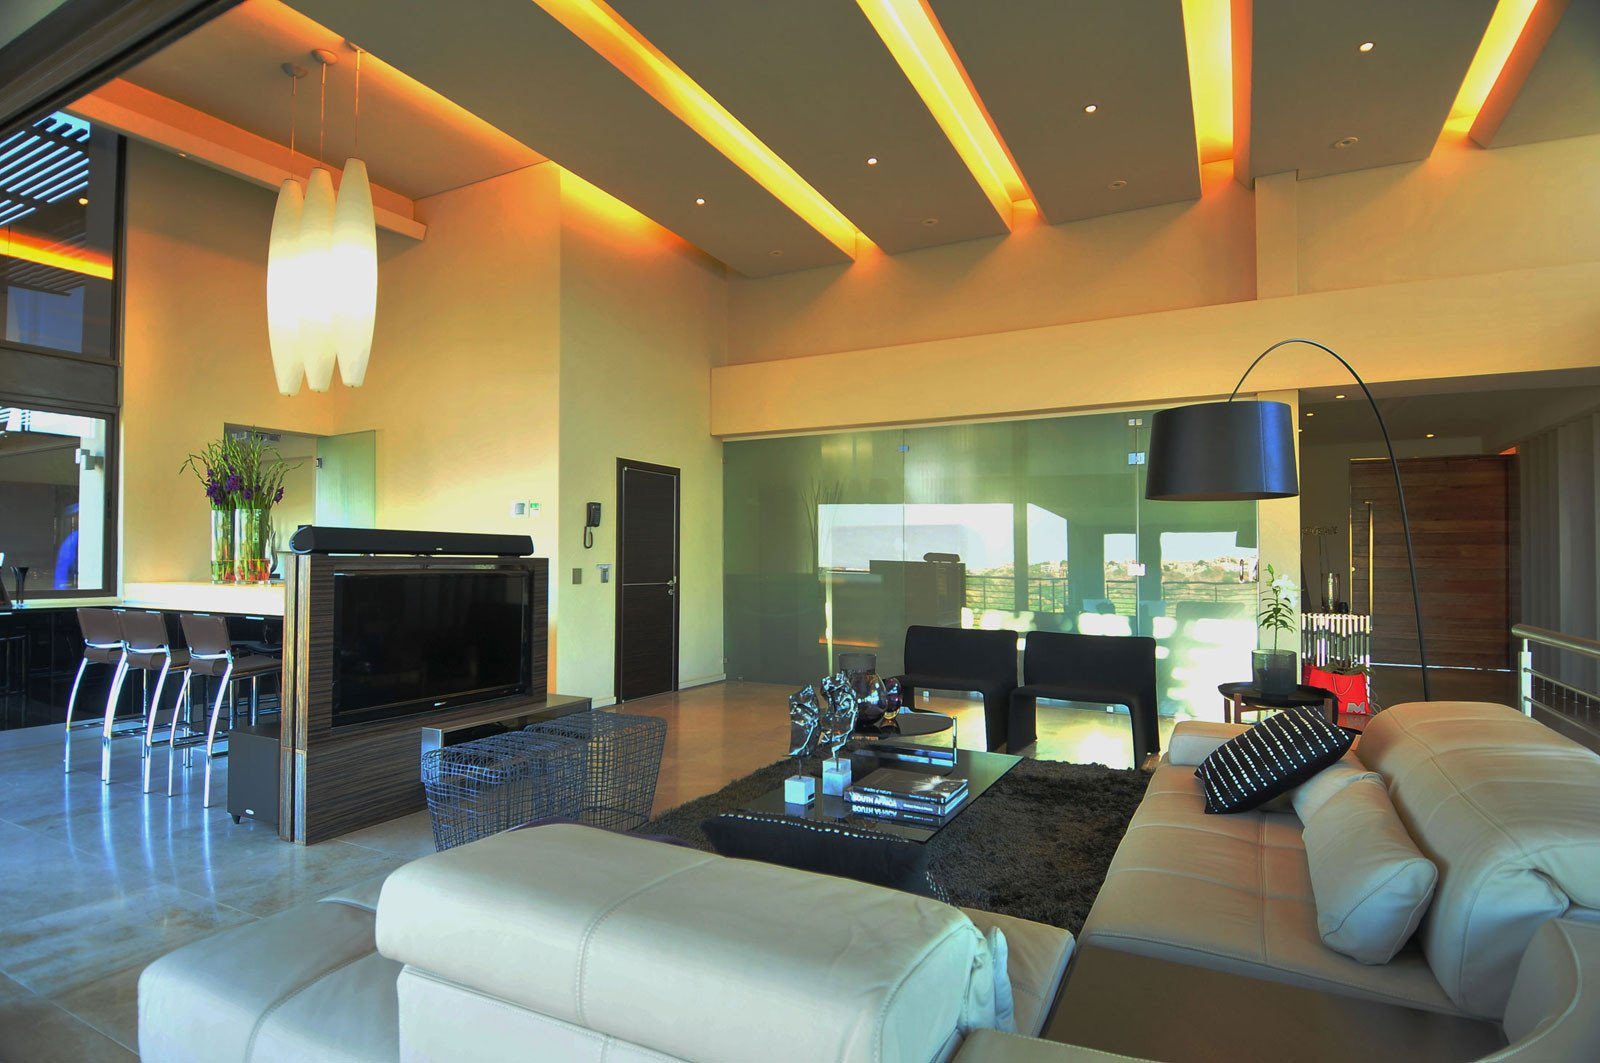 Contemporary Living Room Lights Fresh Modern Ceiling Lights with Hanged Pendant Fixtures and Curved Contemporary Style Lighting